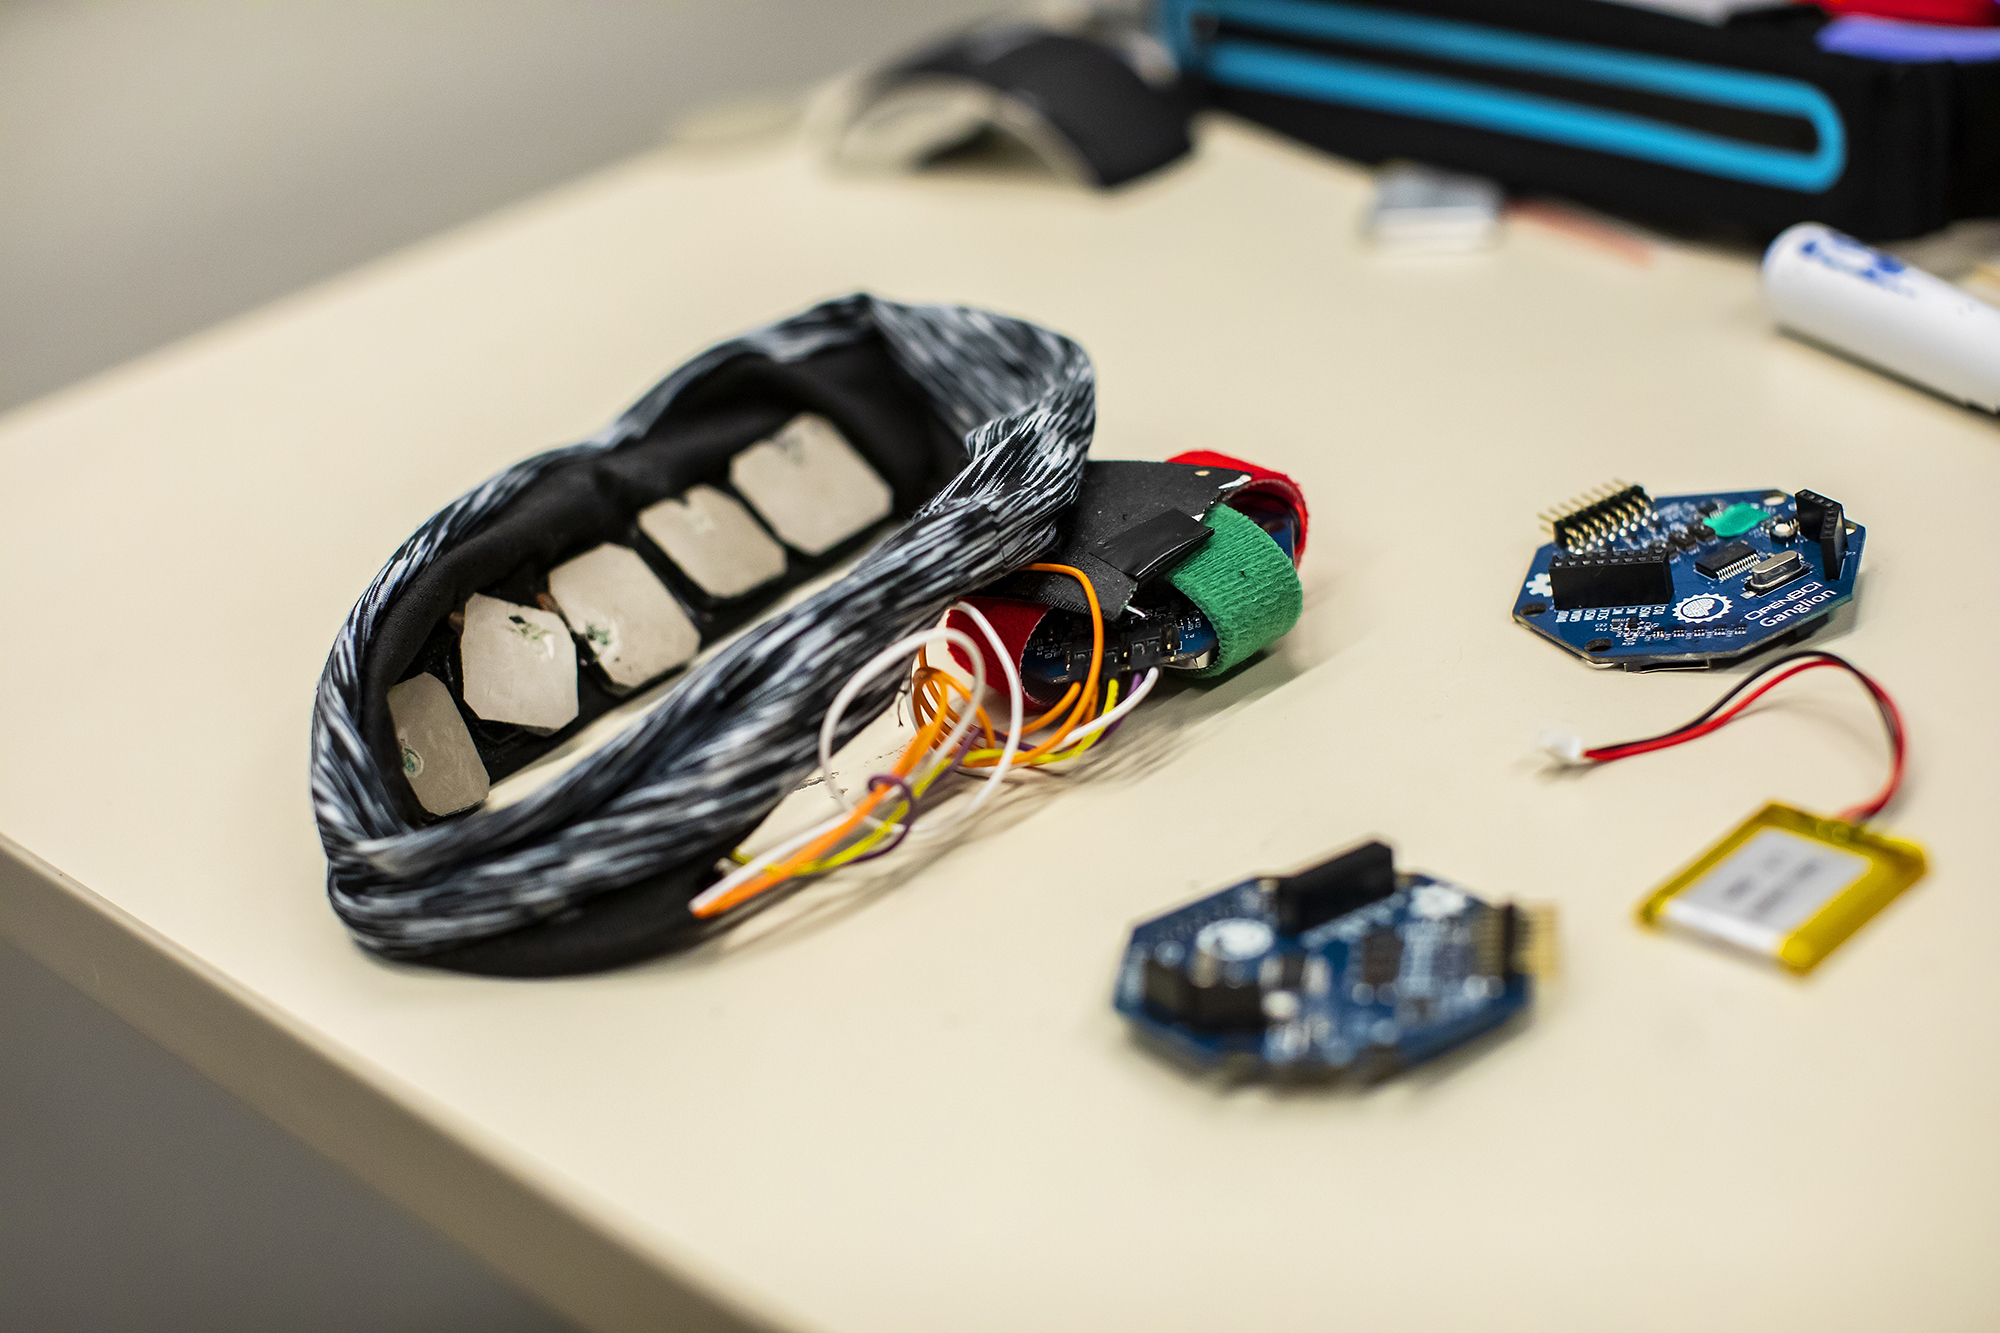 Wearable tech moves brain monitoring from lab to real world